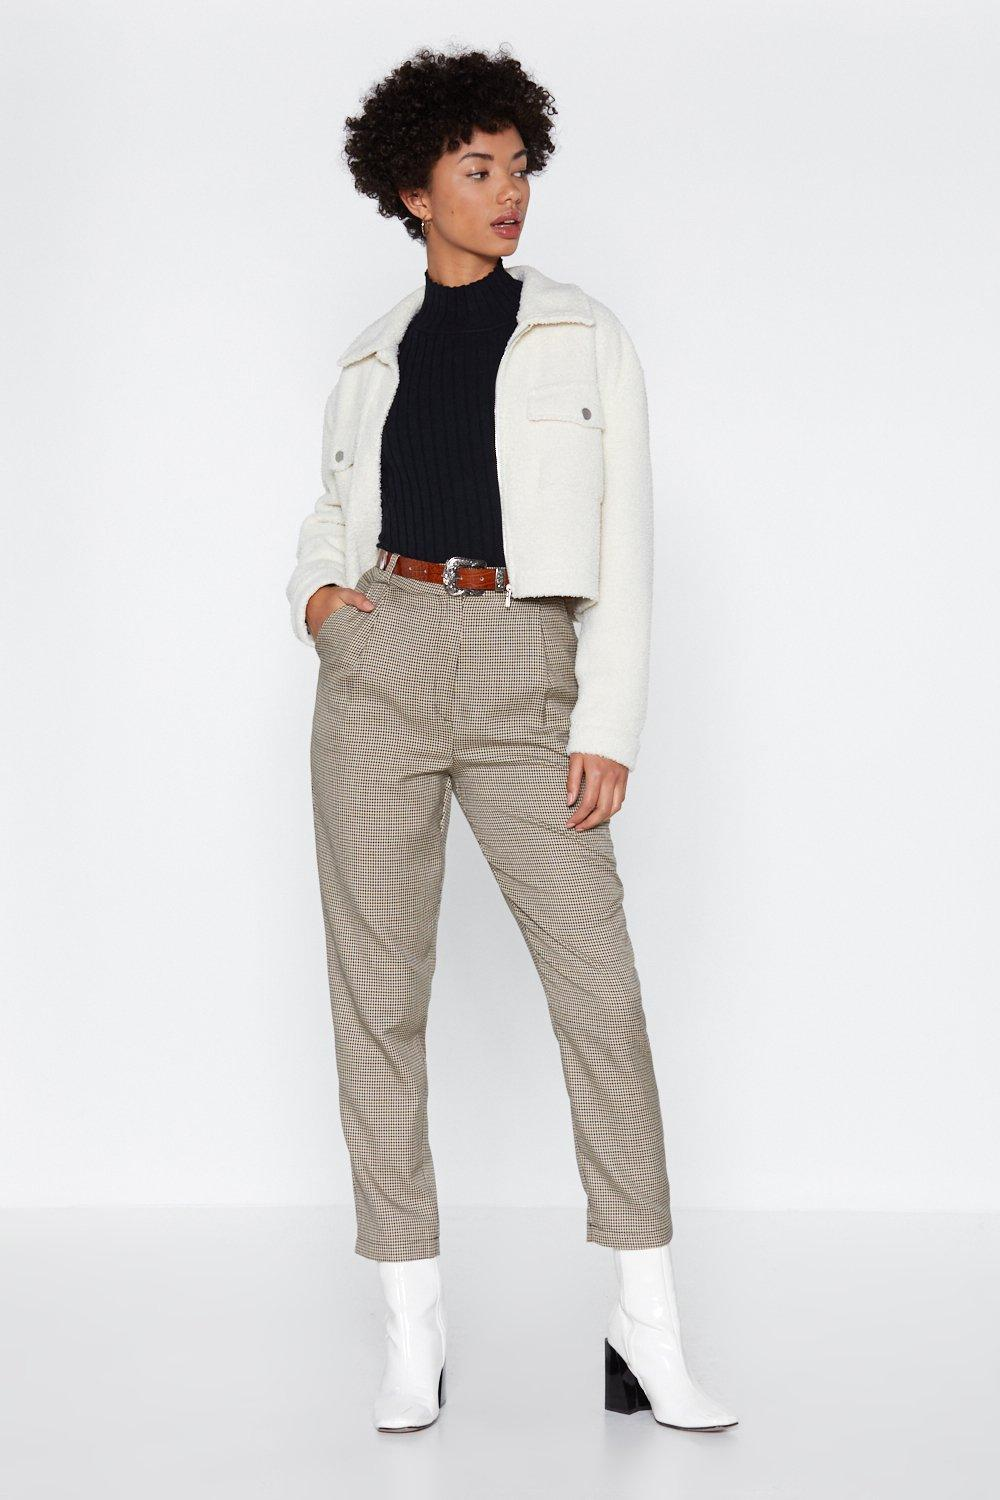 The Tooth Hurts Tapered Pants | Shop Clothes at Nasty Gal!